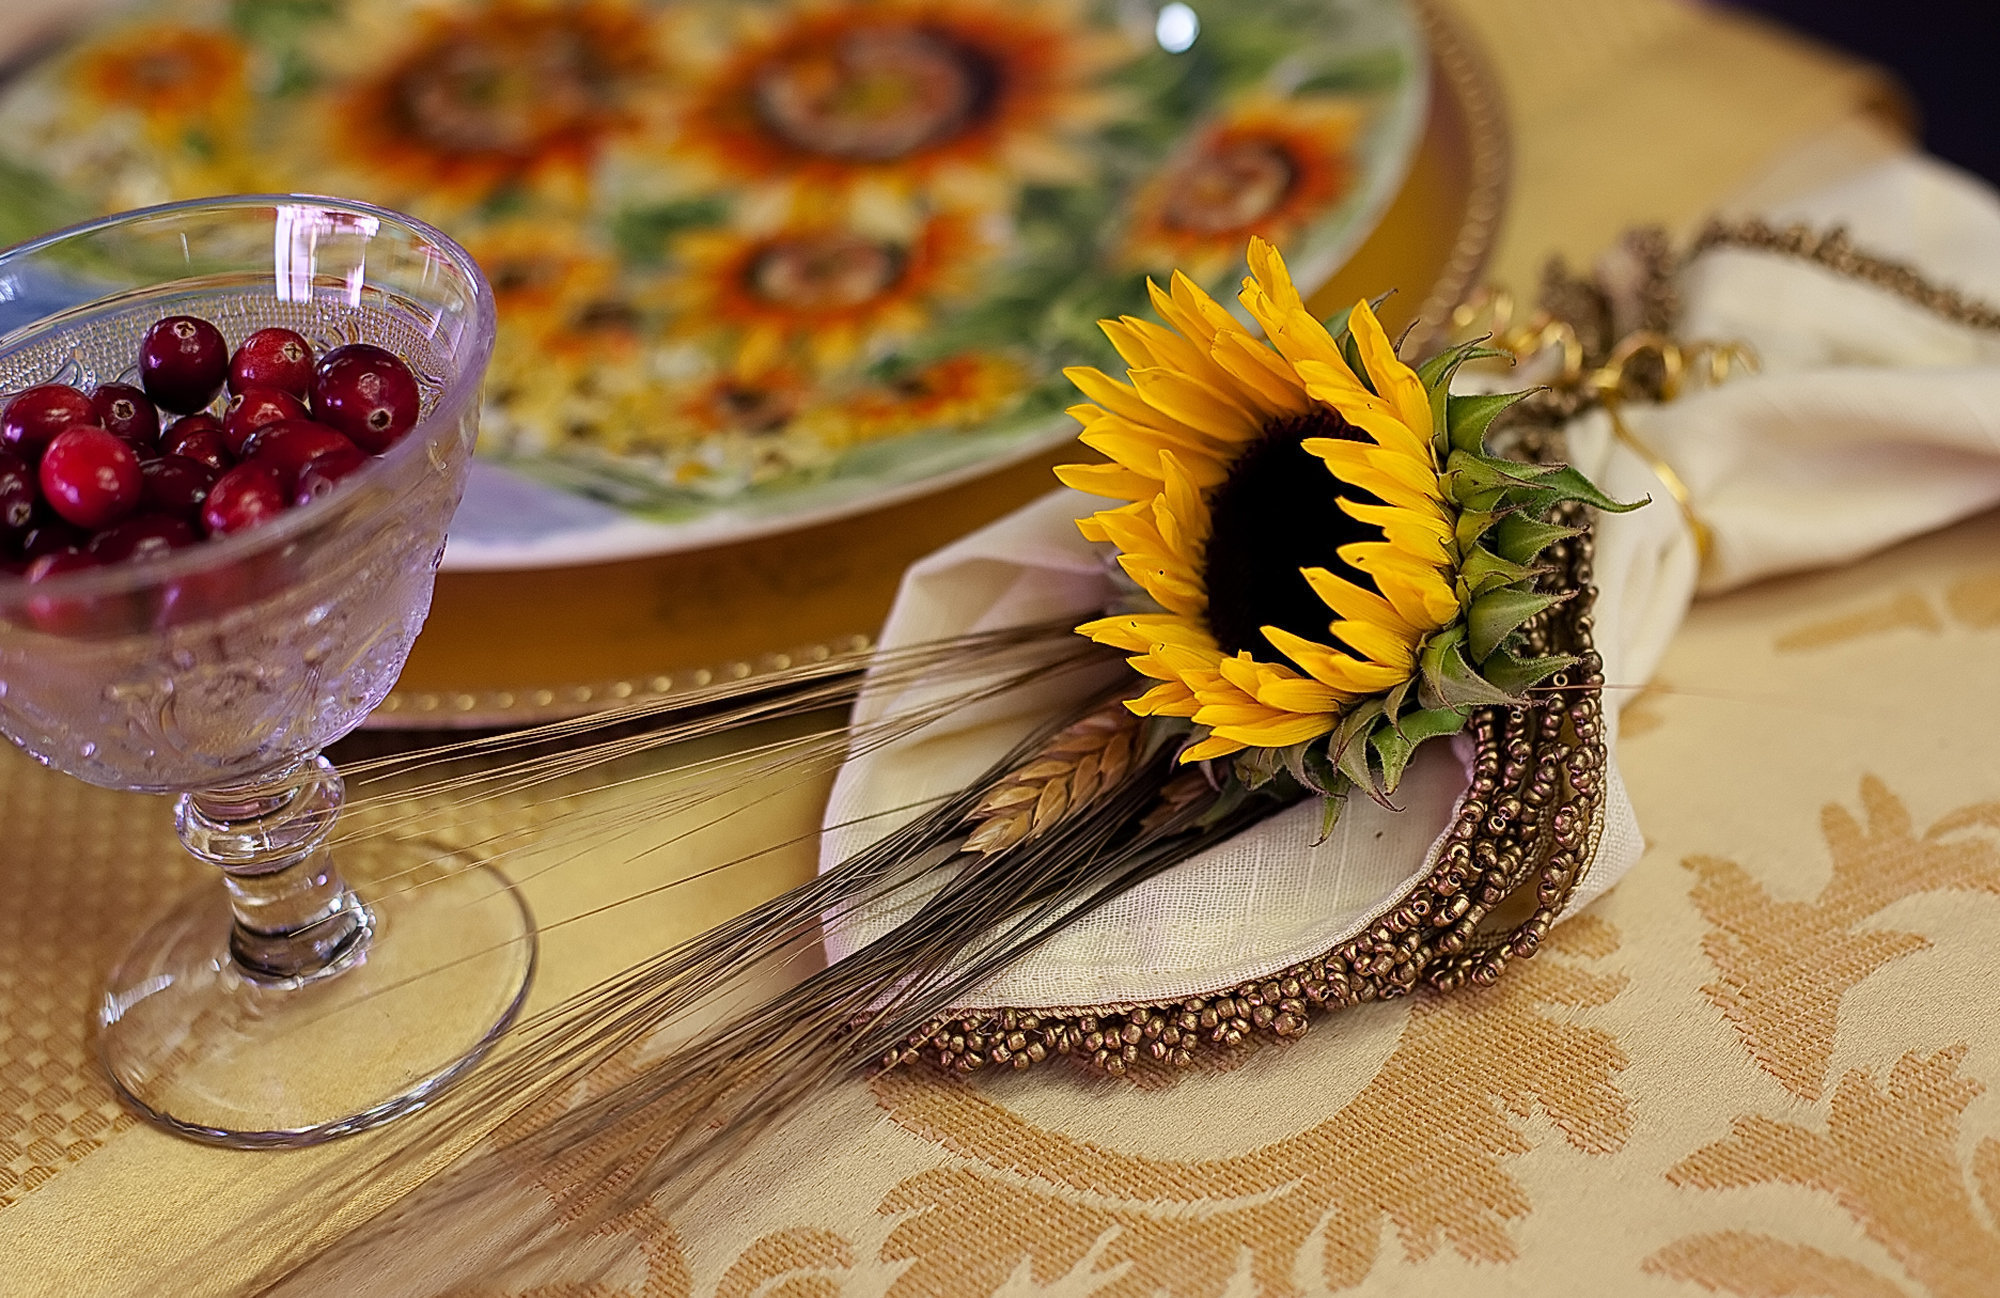 2. Table Decorations